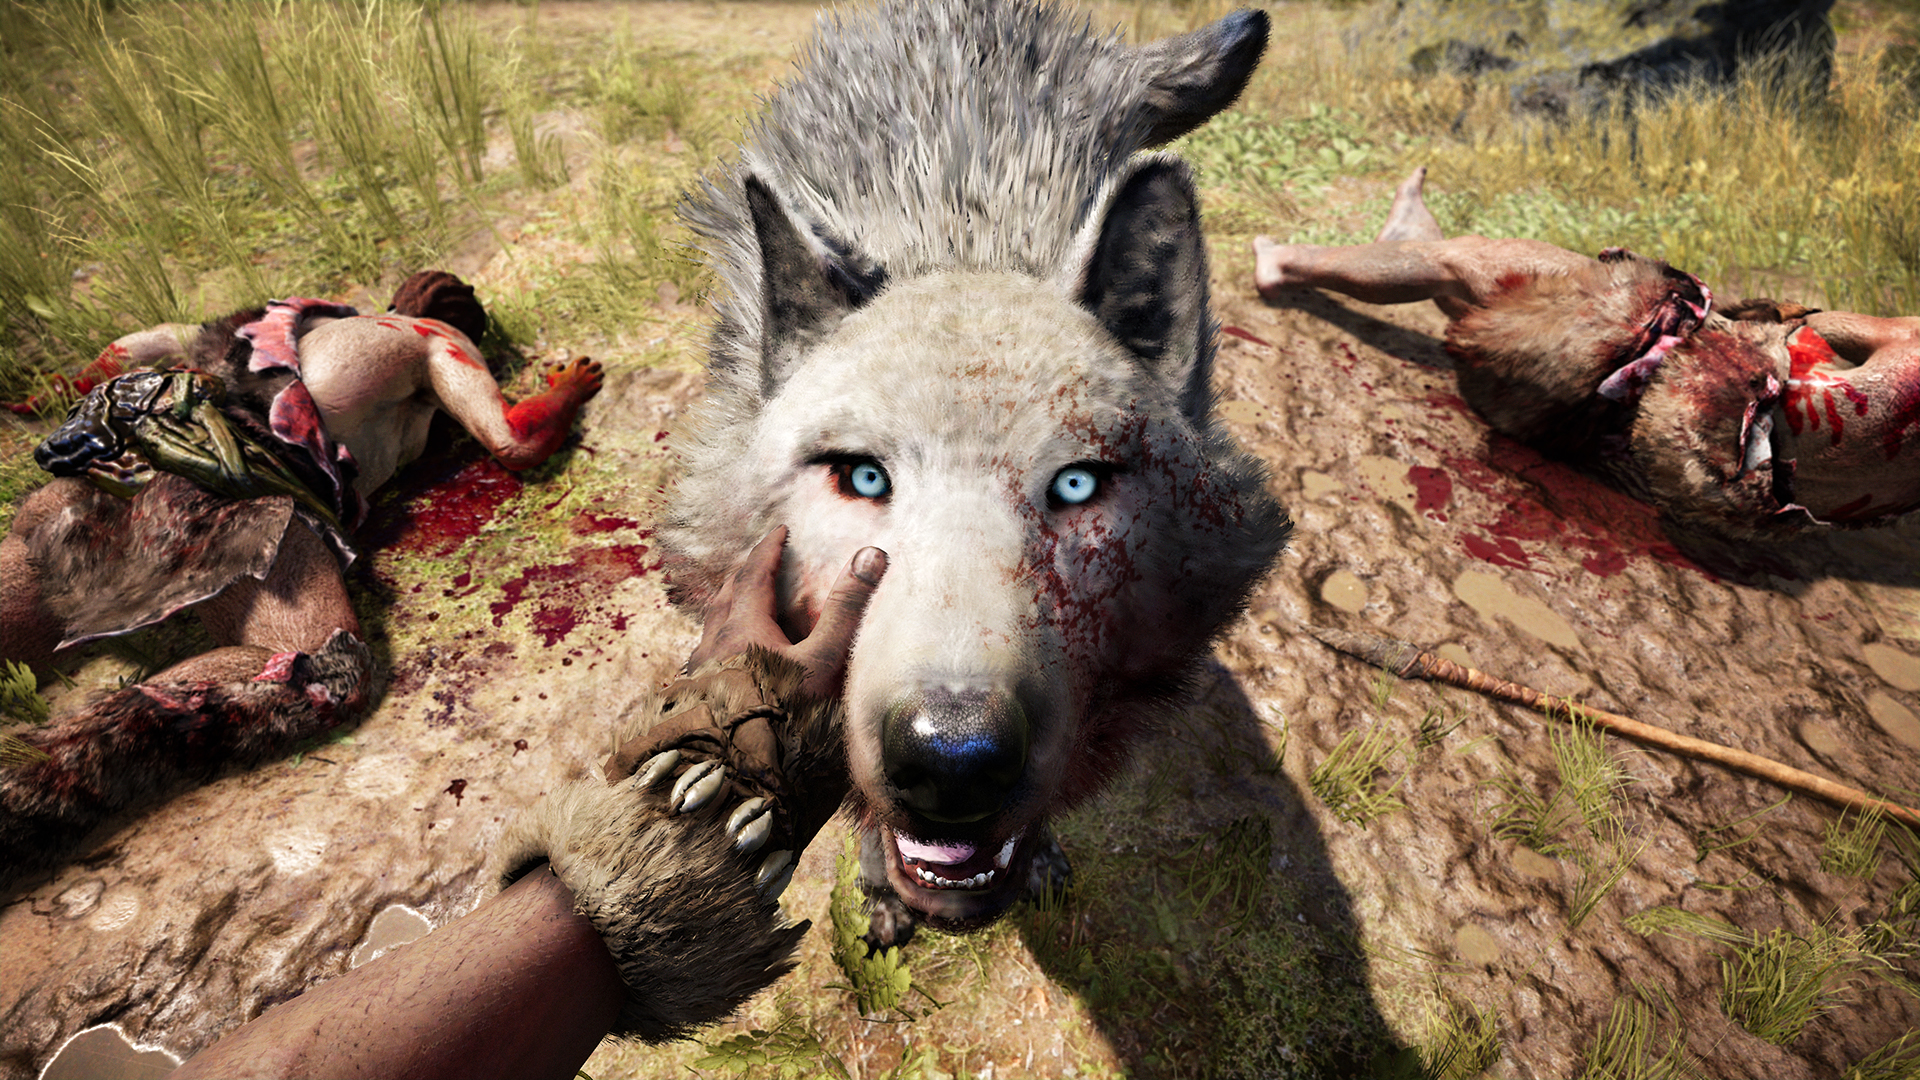 I found myself kneeling to pet my steel-eyed wolf friend after every encounter